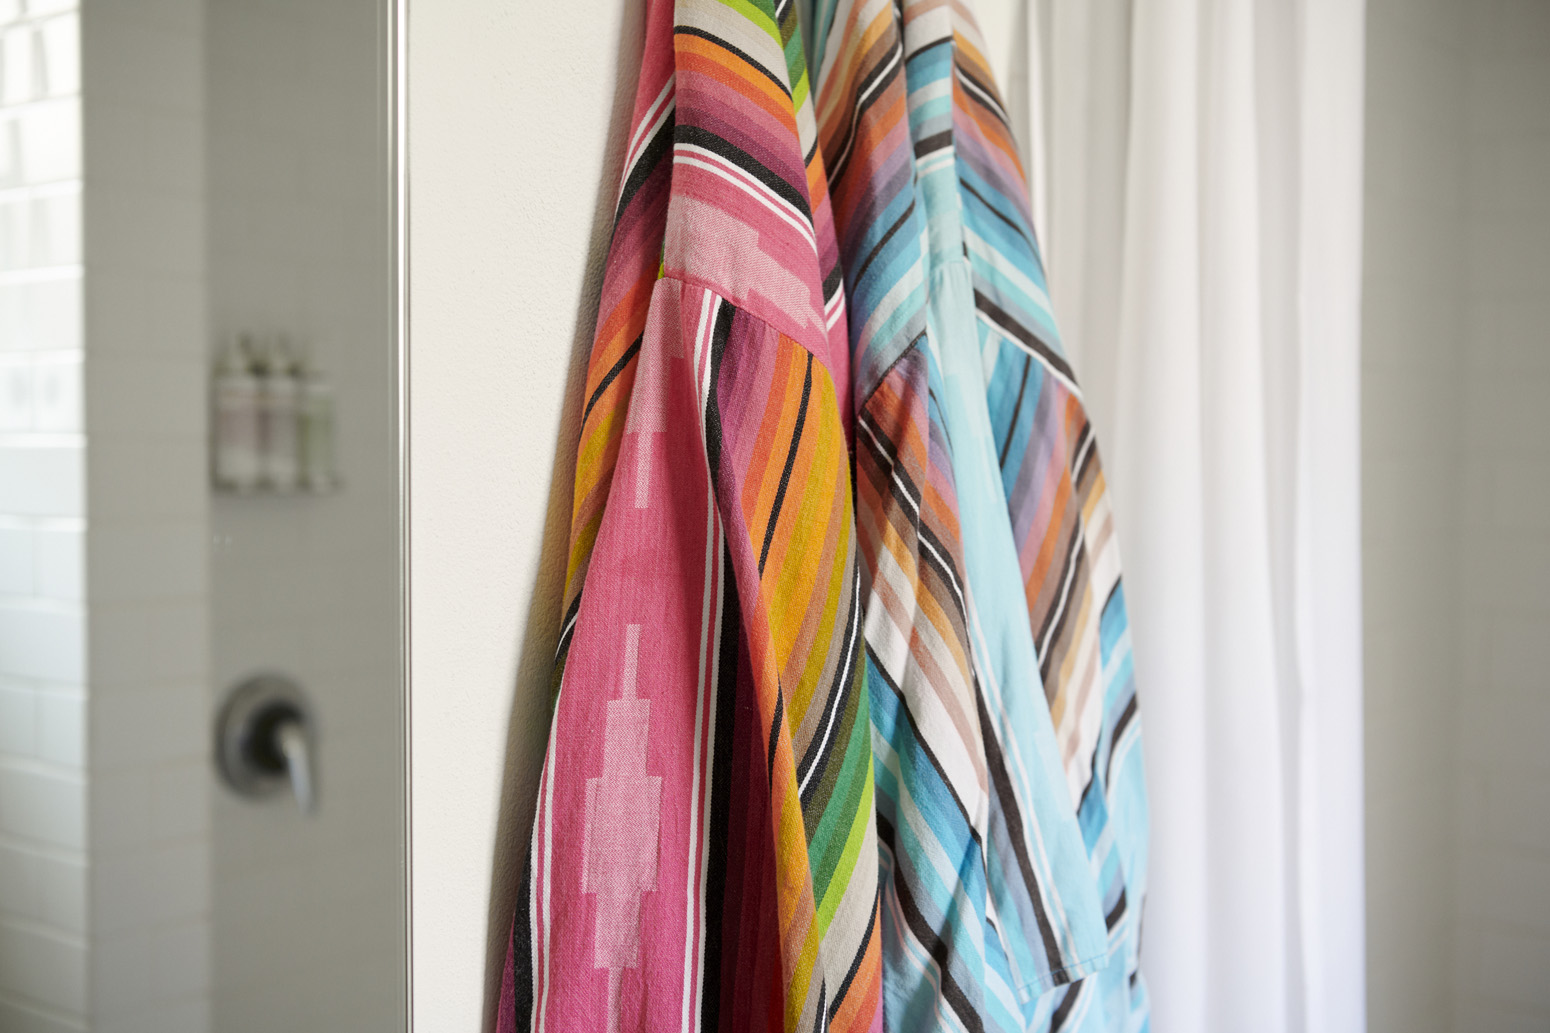 A set of colorful bathrobes hanging on a wall